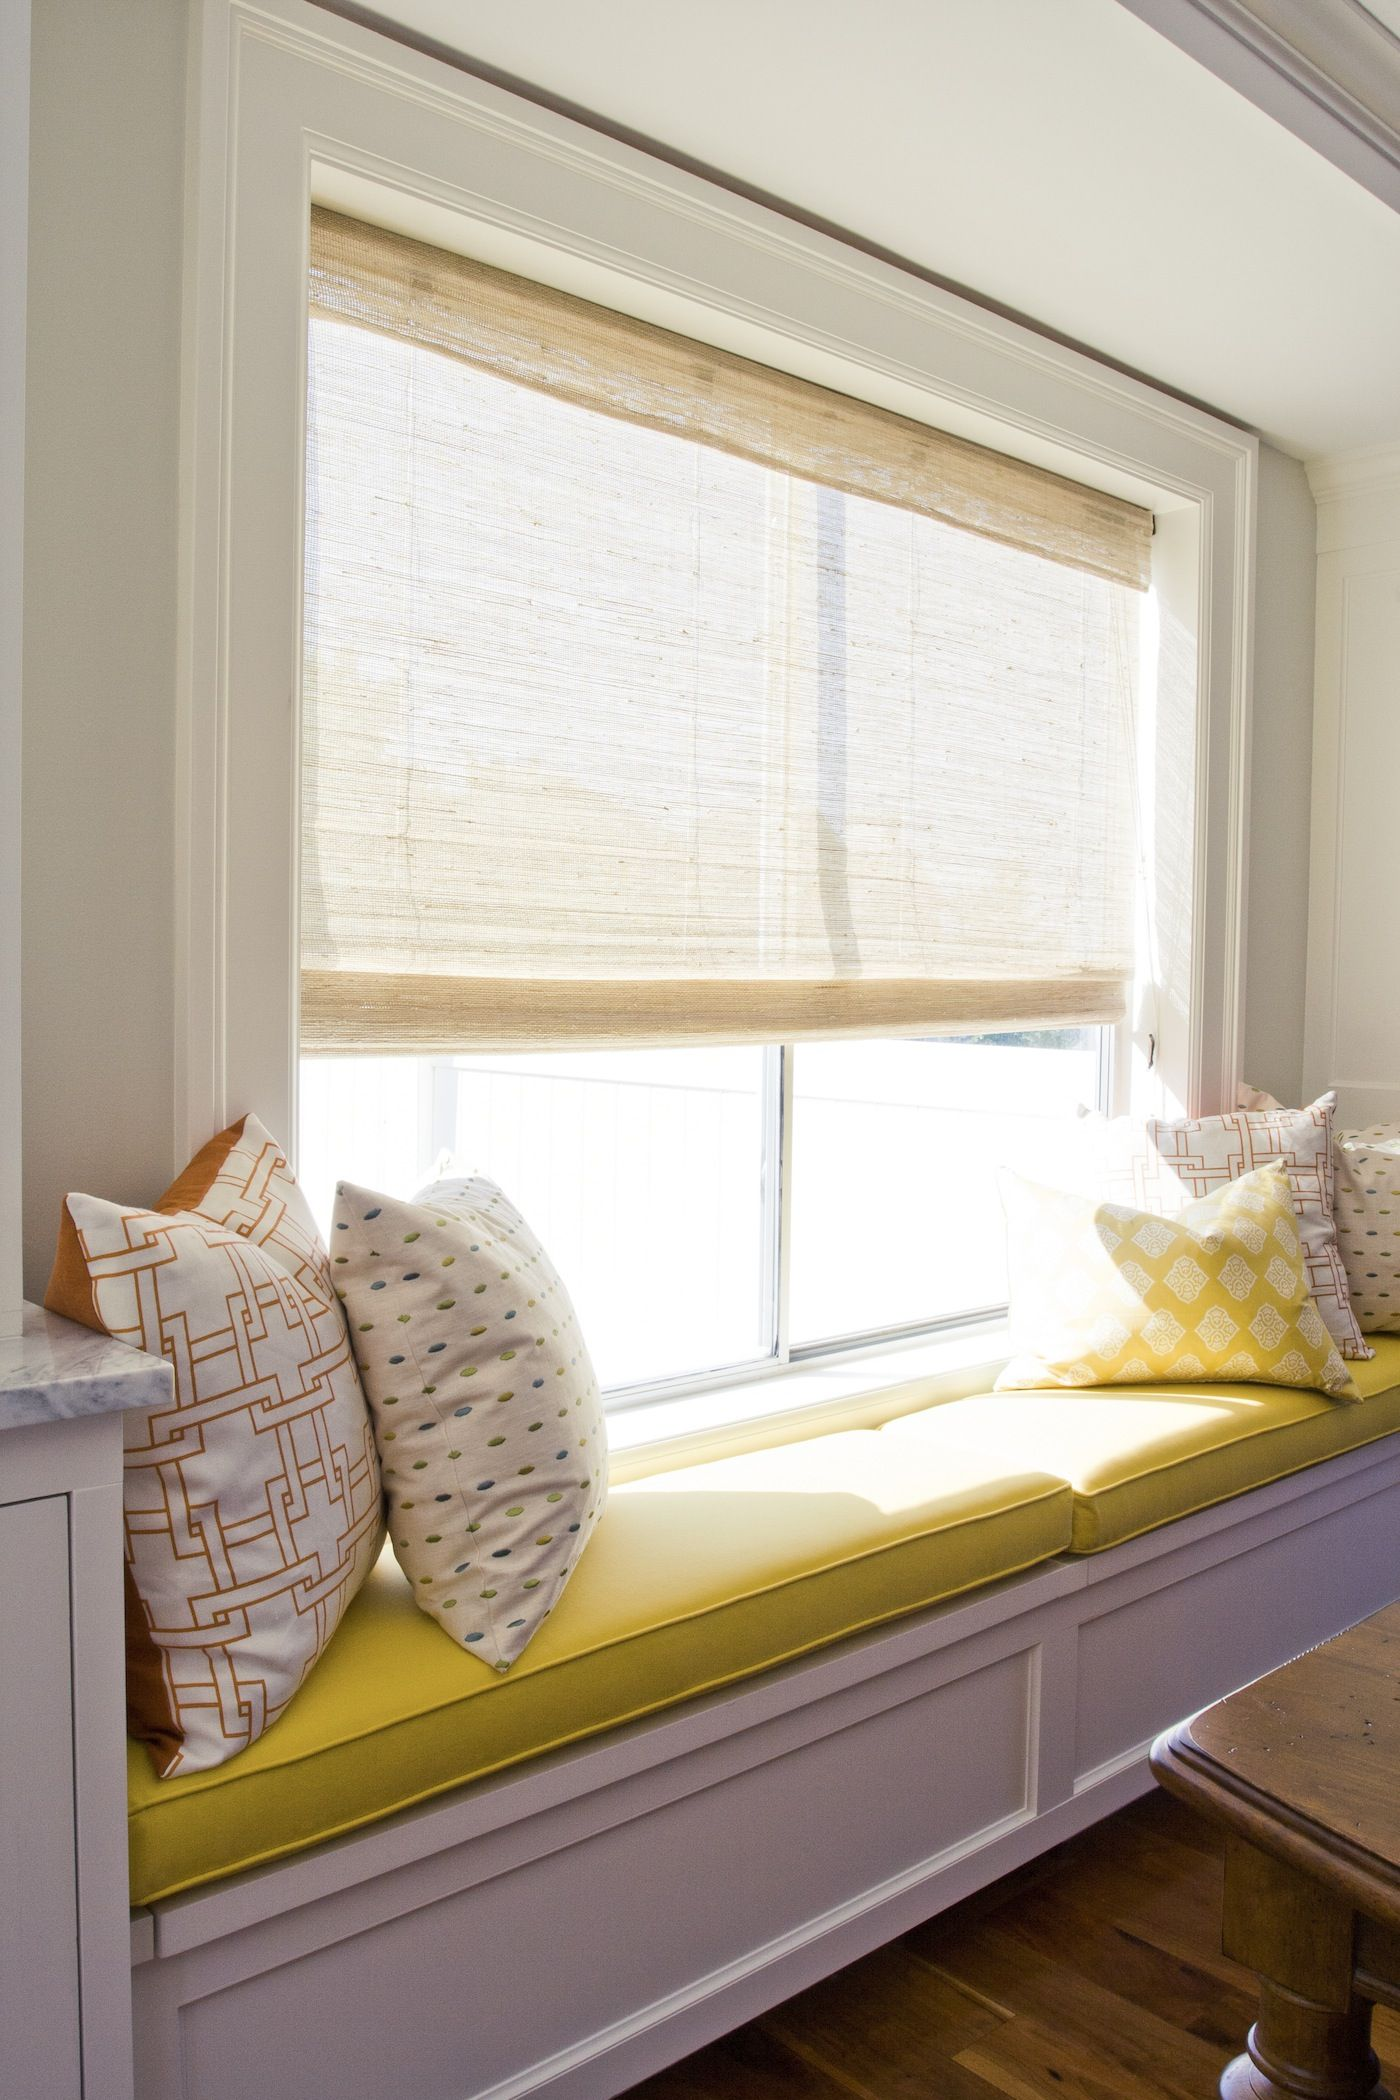 Window Seat Banquette Under The Playroom Windows Home Pinterest See Best Ideas About